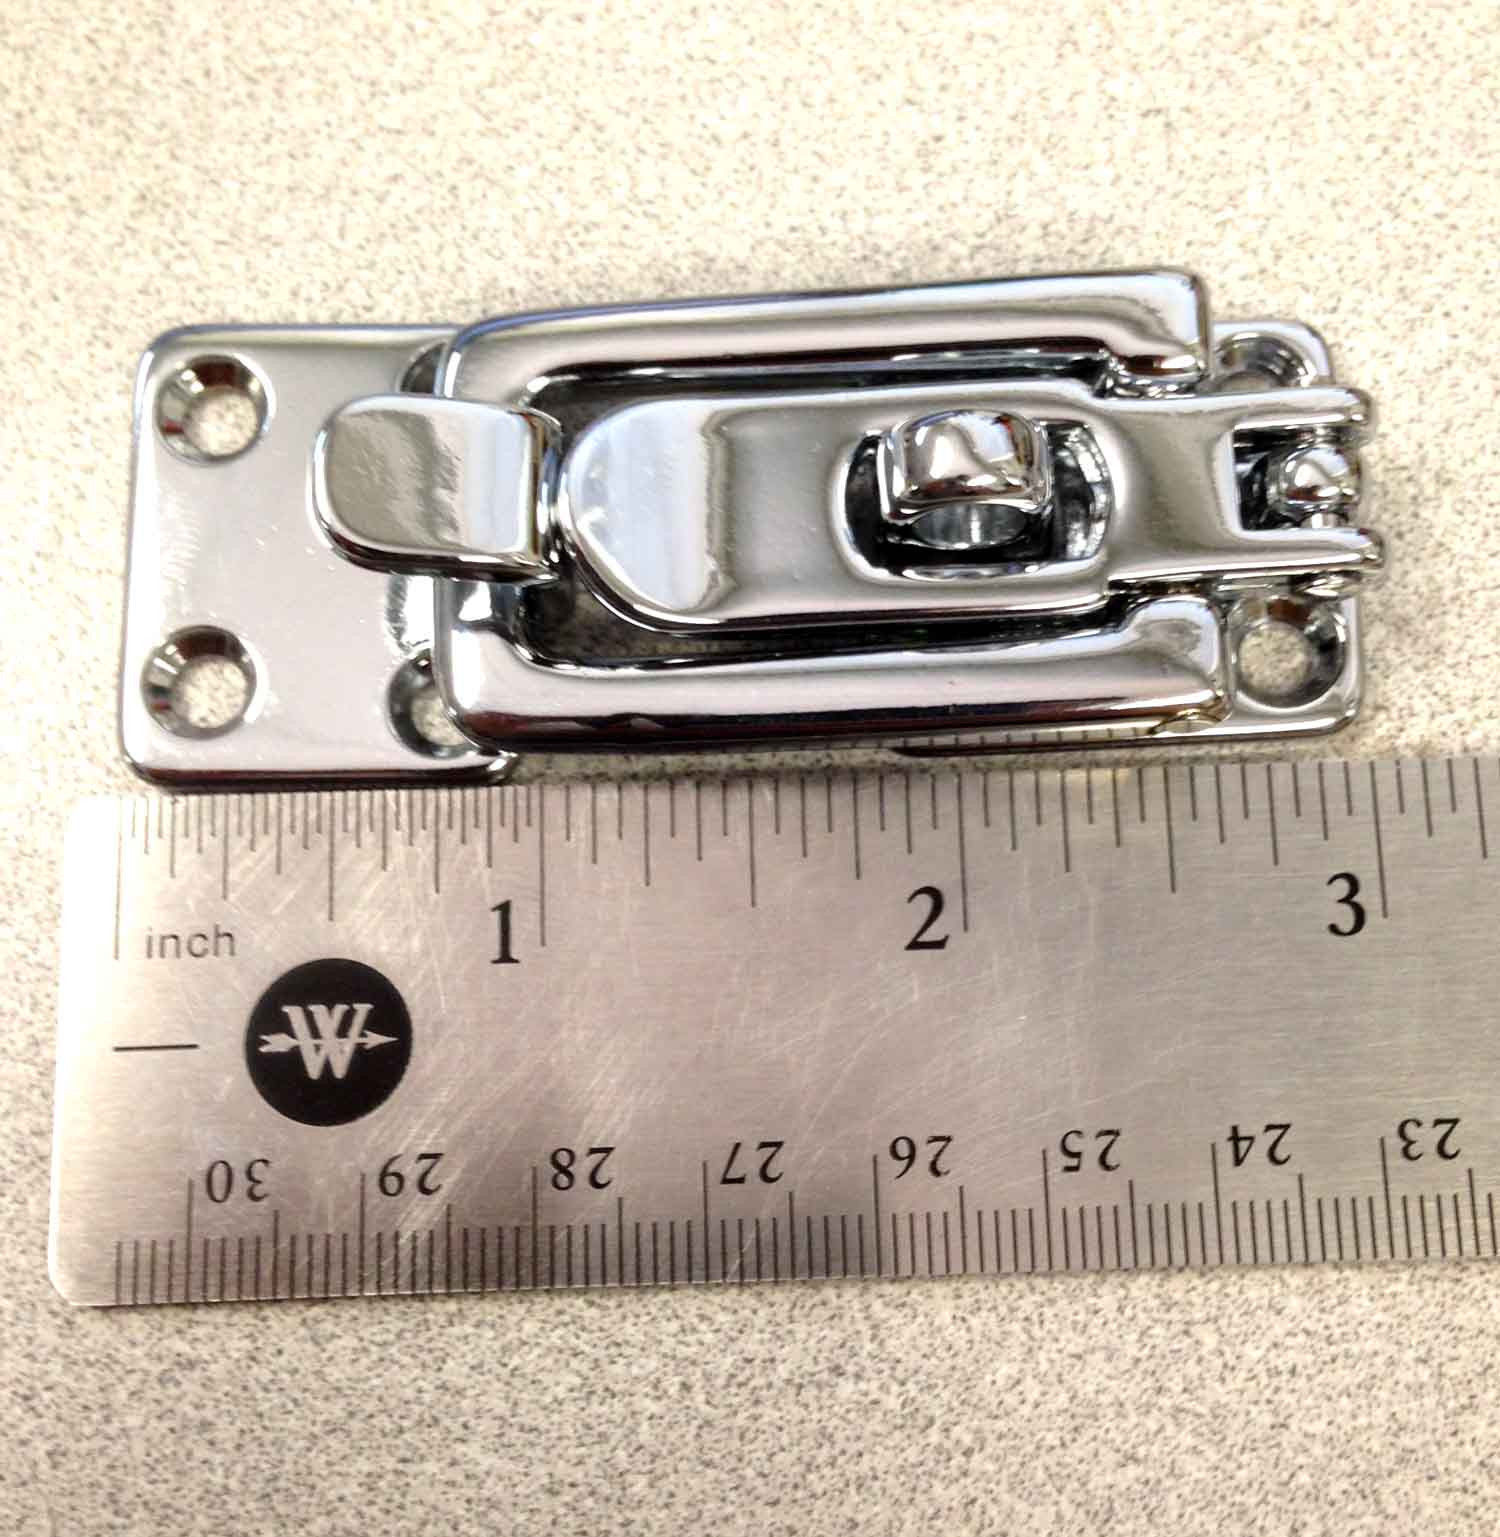 "MARINE BOAT ANTI RATTLE HATCH FASTENER CHROME PLATED BRASS 4"" BY"